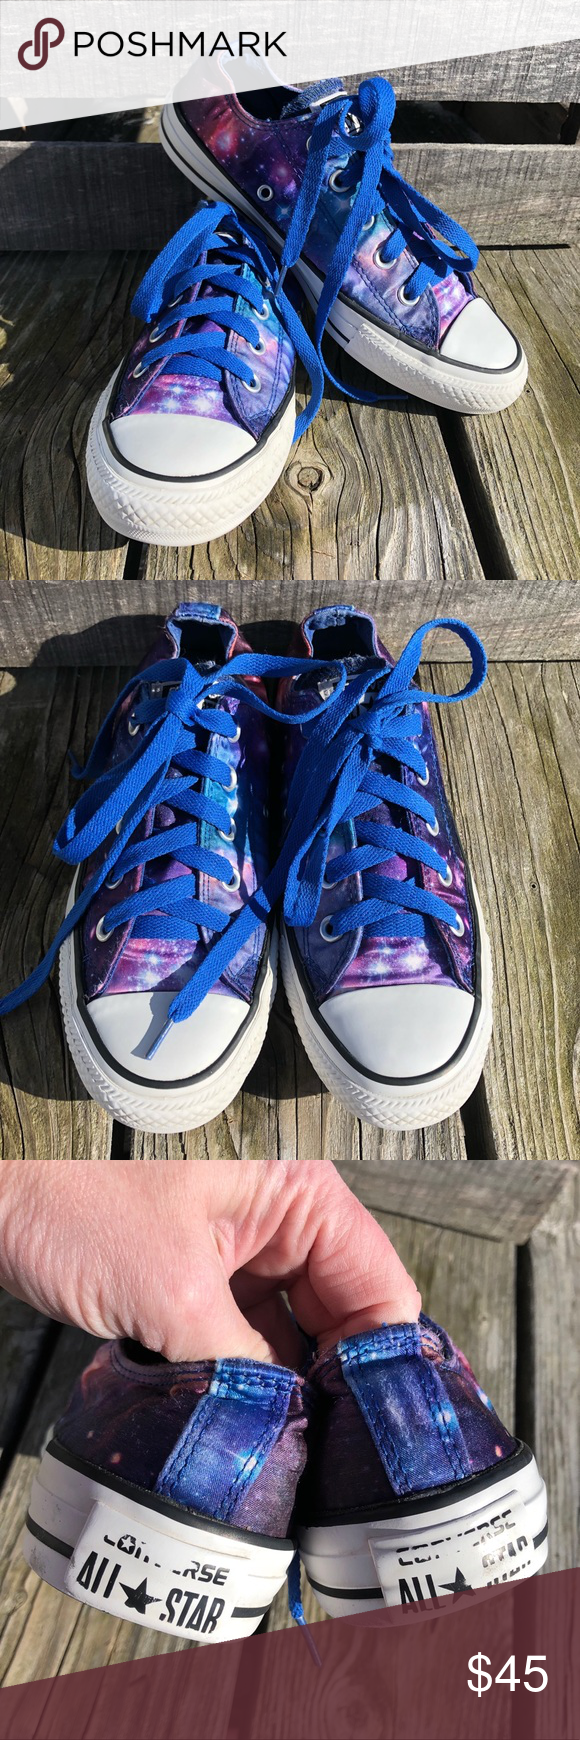 6441dd73abb518 🆕List! Coveted Satin Galaxy Converse🆕Laces! EUC! Always a favorite ...